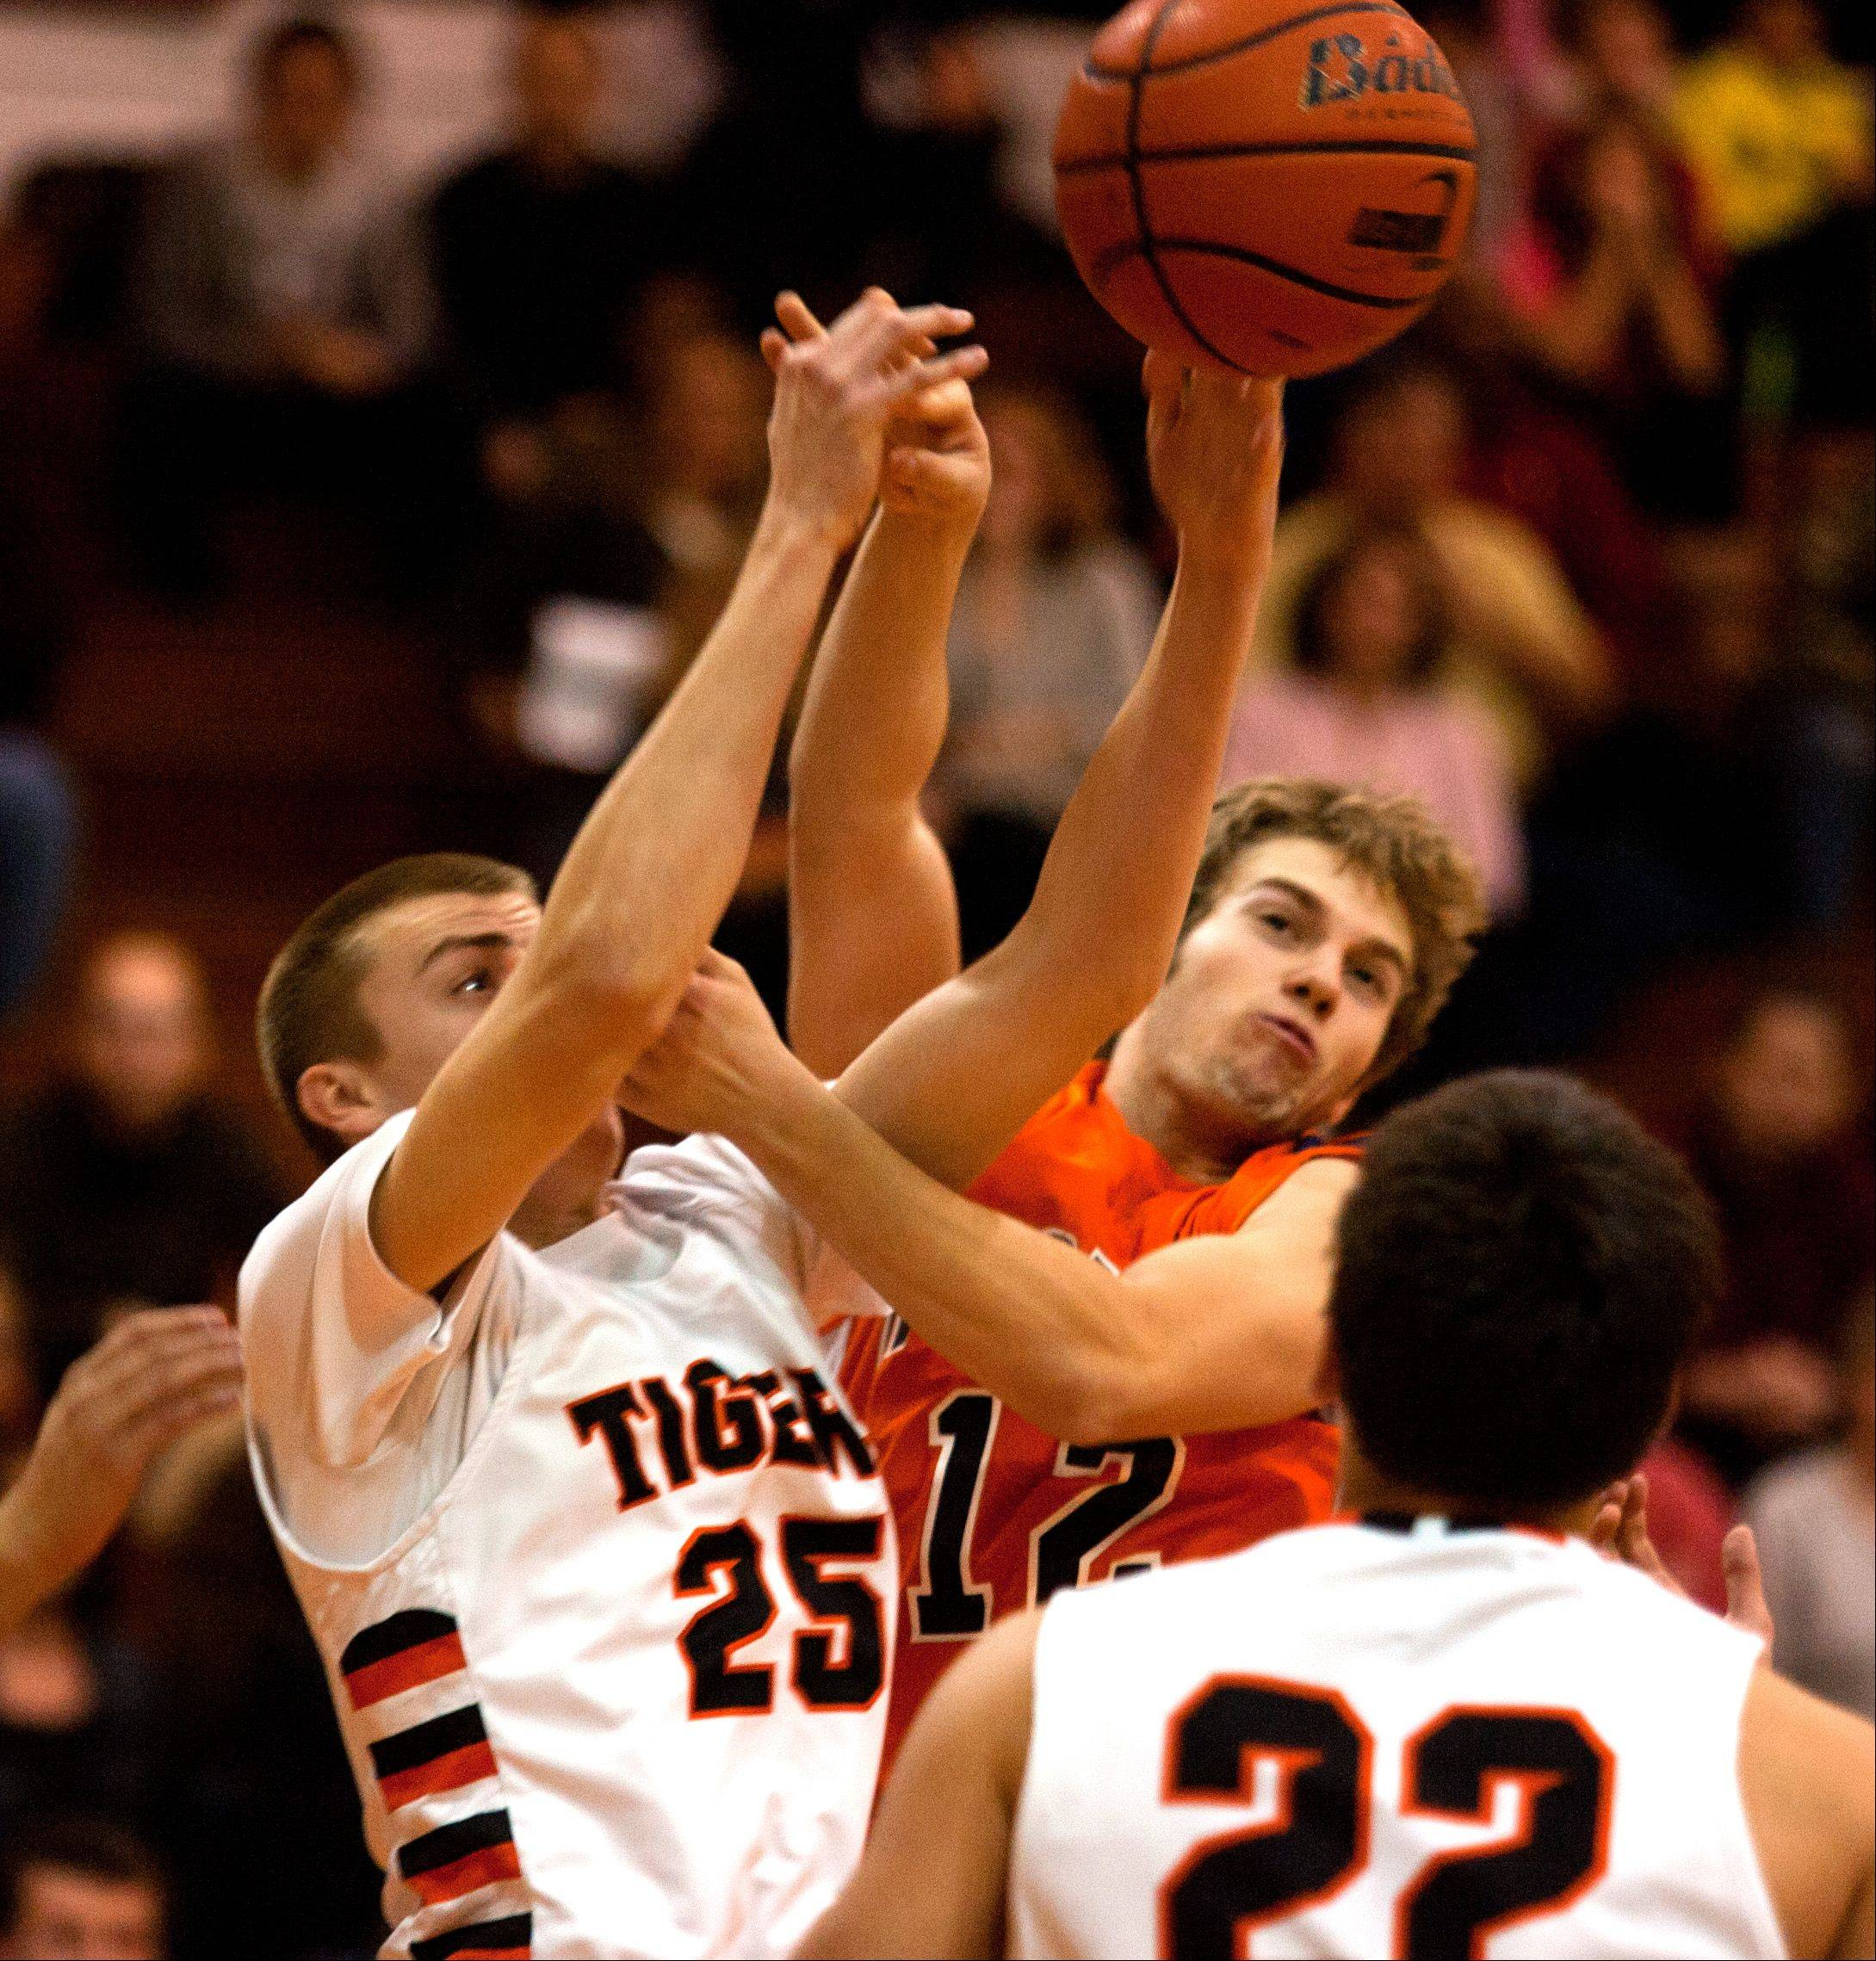 Wheaton Warrenville South's Michael Kramer (25), battles Naperville North's Bryan LoLordo (12), during boys basketball action in Wheaton.